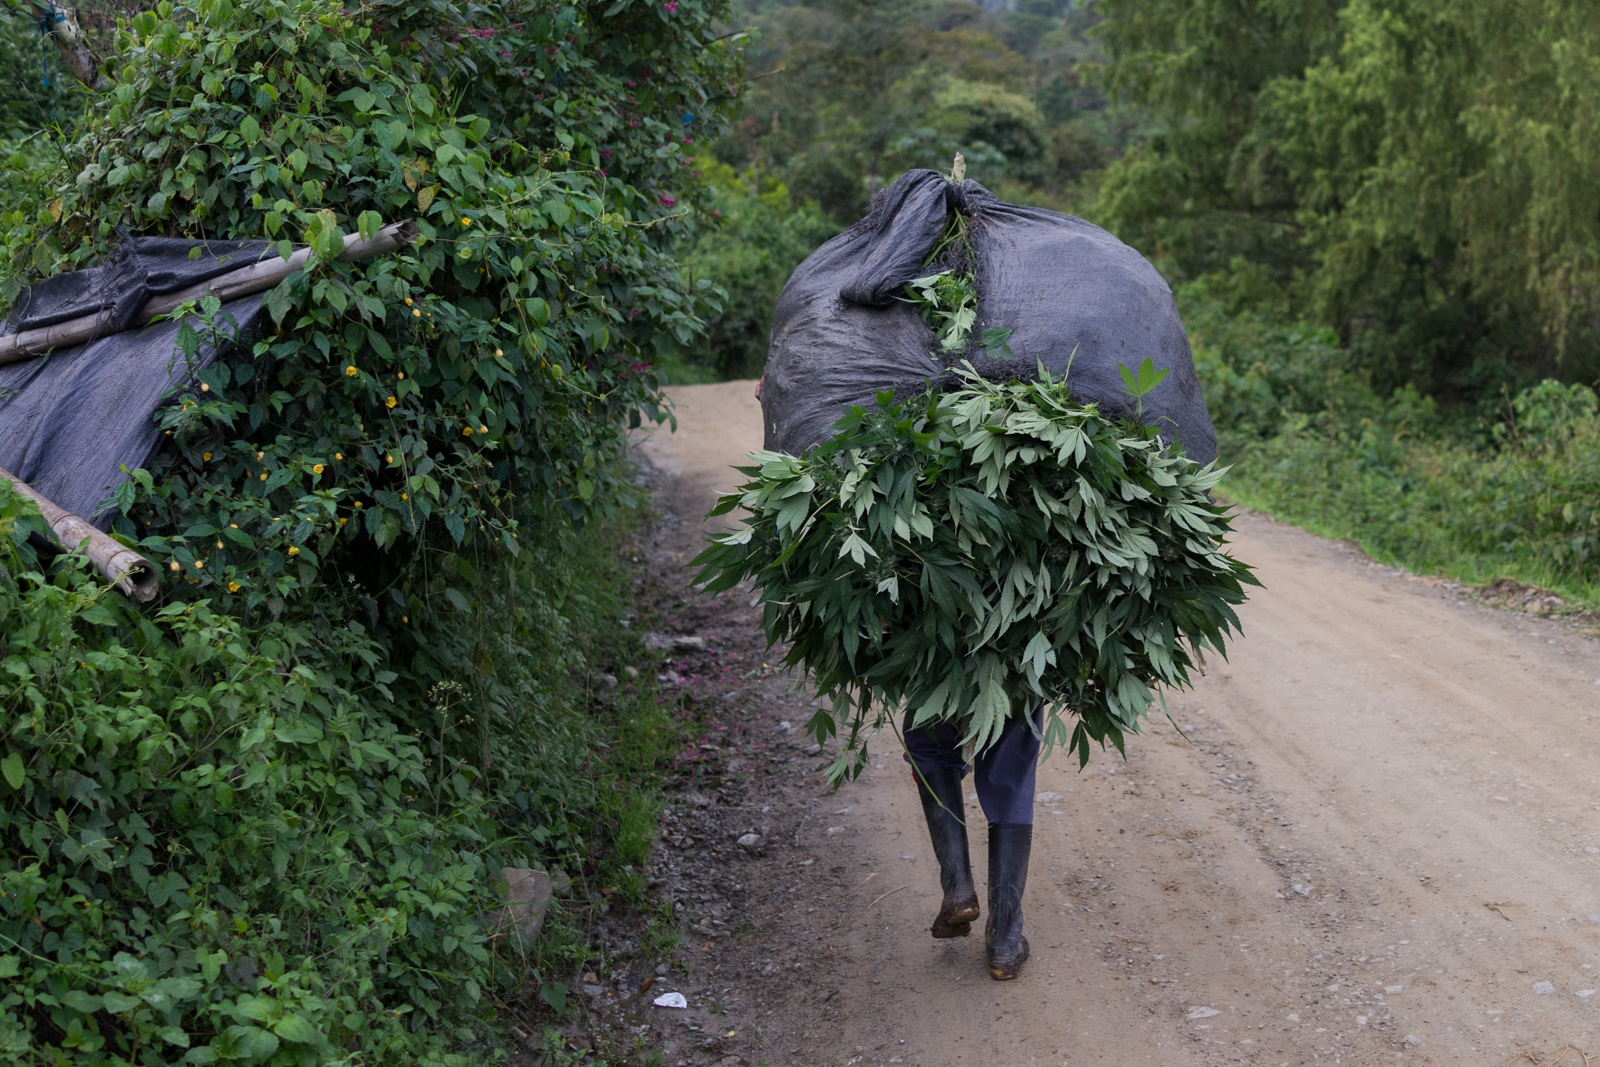 Carlos, 13, carries several marijuana plants on his back and starts walking towards neighbours house, his neighbour is lending him his oven and will charge him a small commission for the usage.